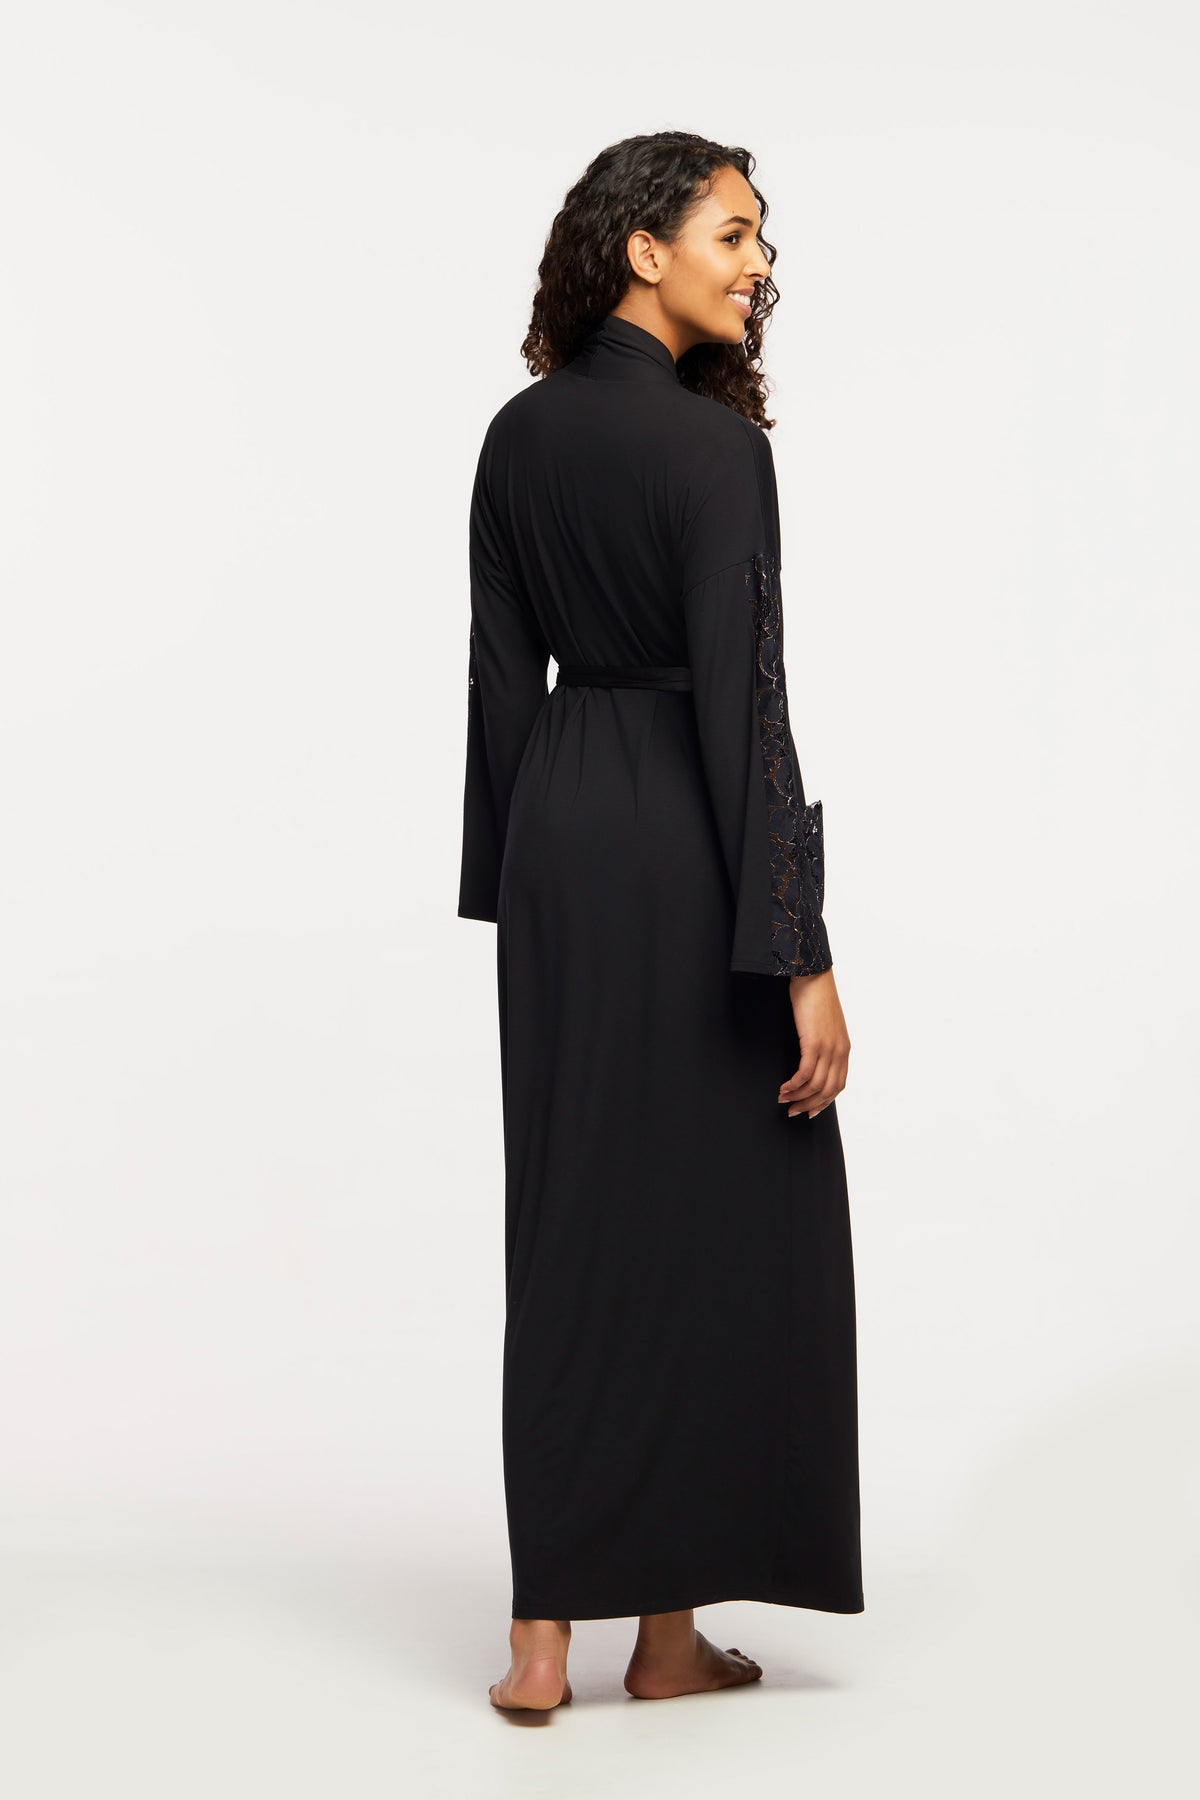 6306 Long Robe |BLACK|